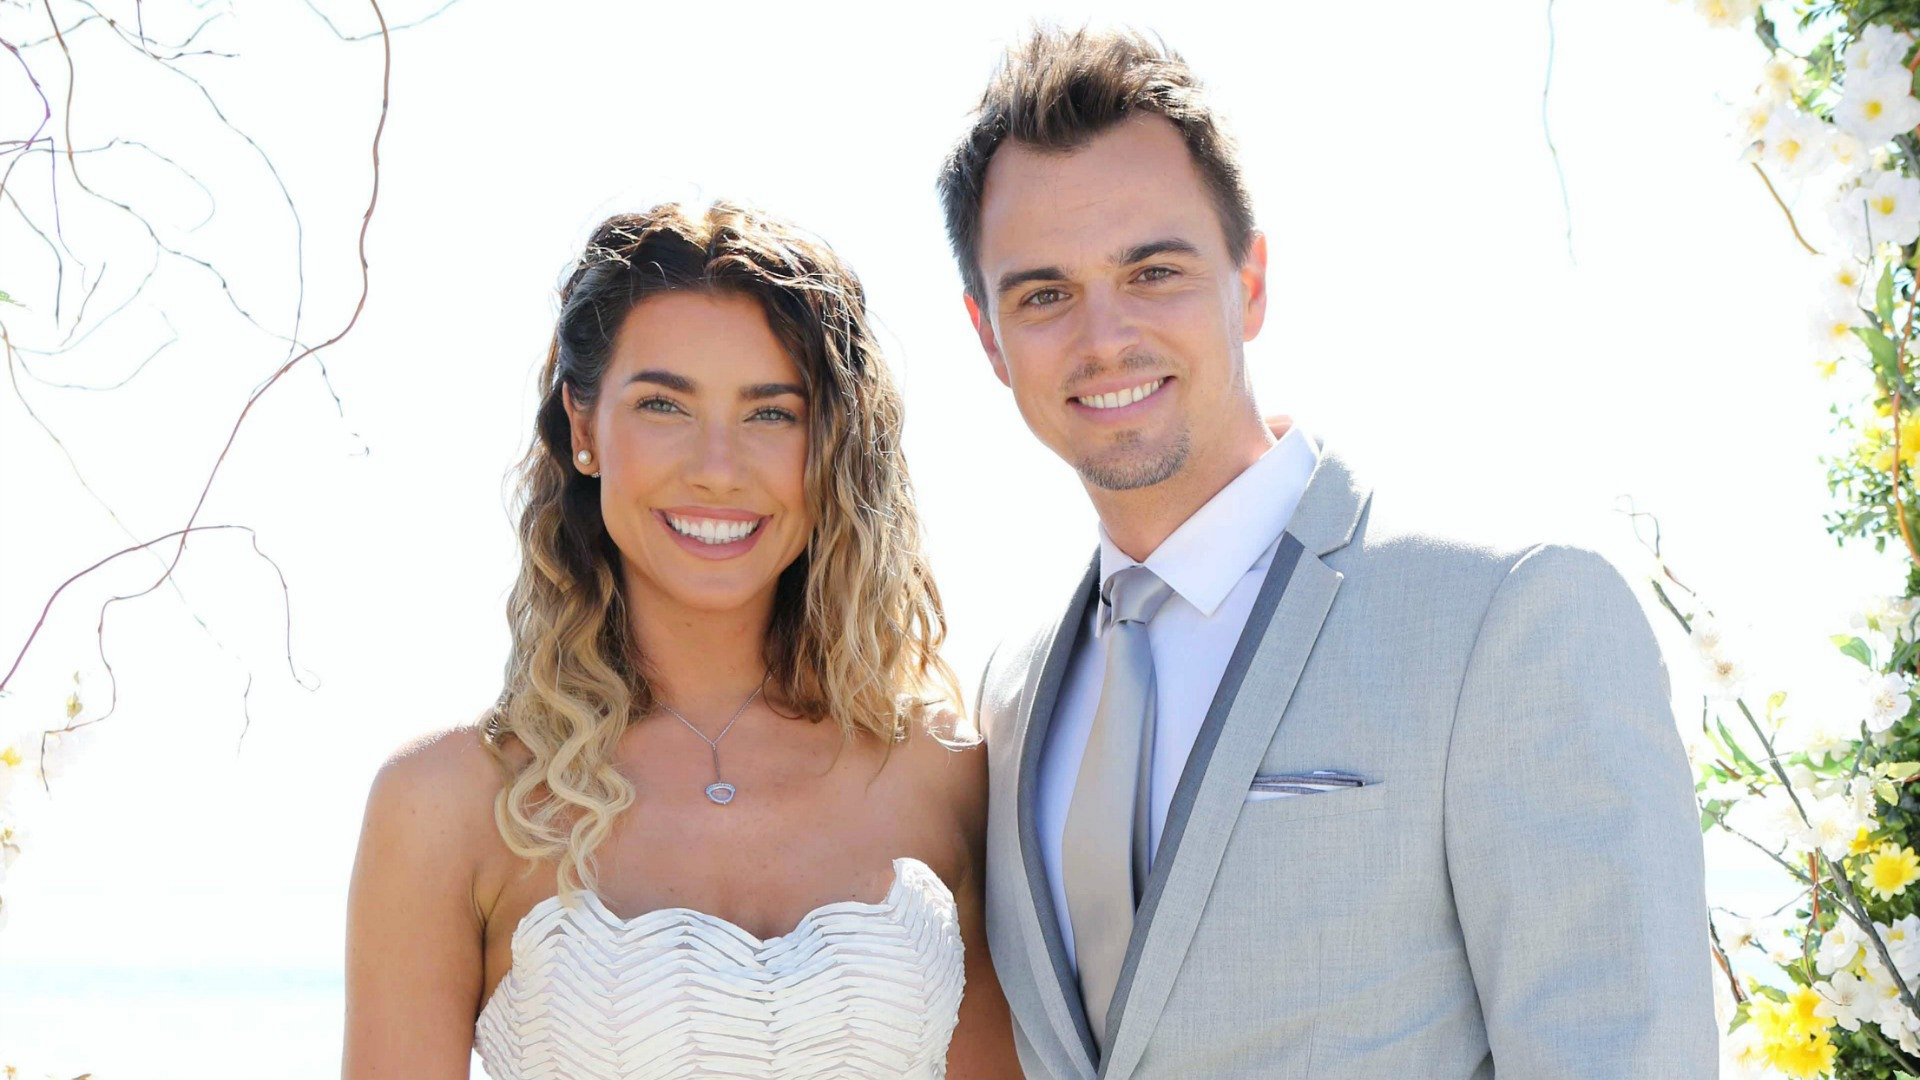 Steffy and Wyatt were married on The Bold and the Beautiful.